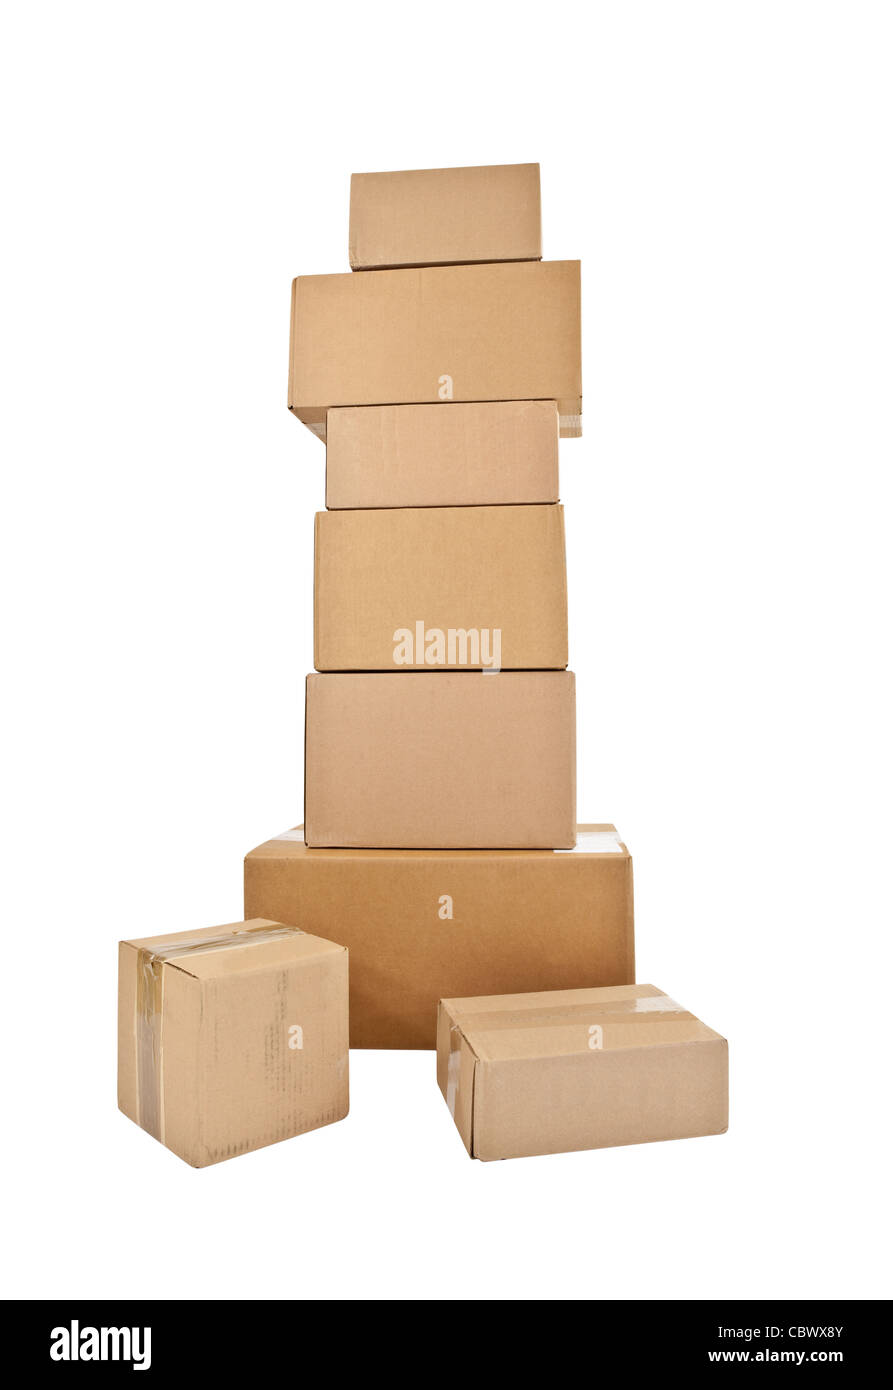 Tall stack of shipping boxes isolated on white. - Stock Image